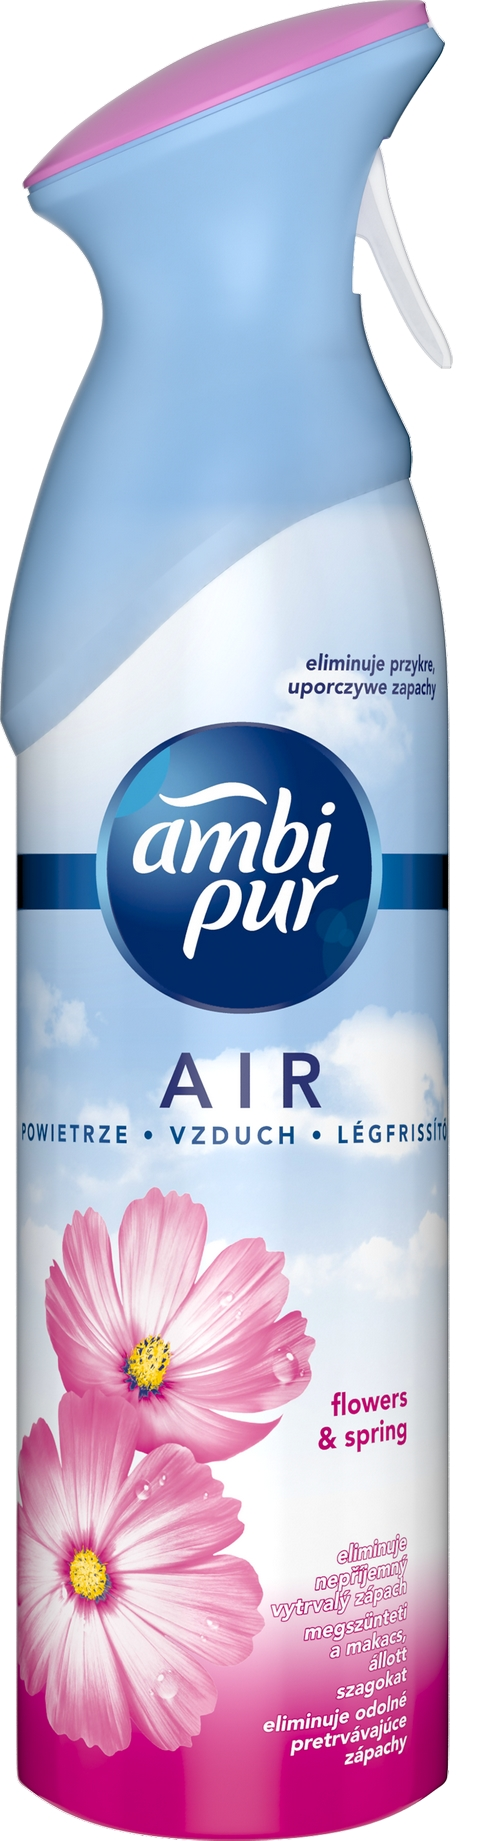 AMBI PUR Spray Flowers & Spring 300 ml